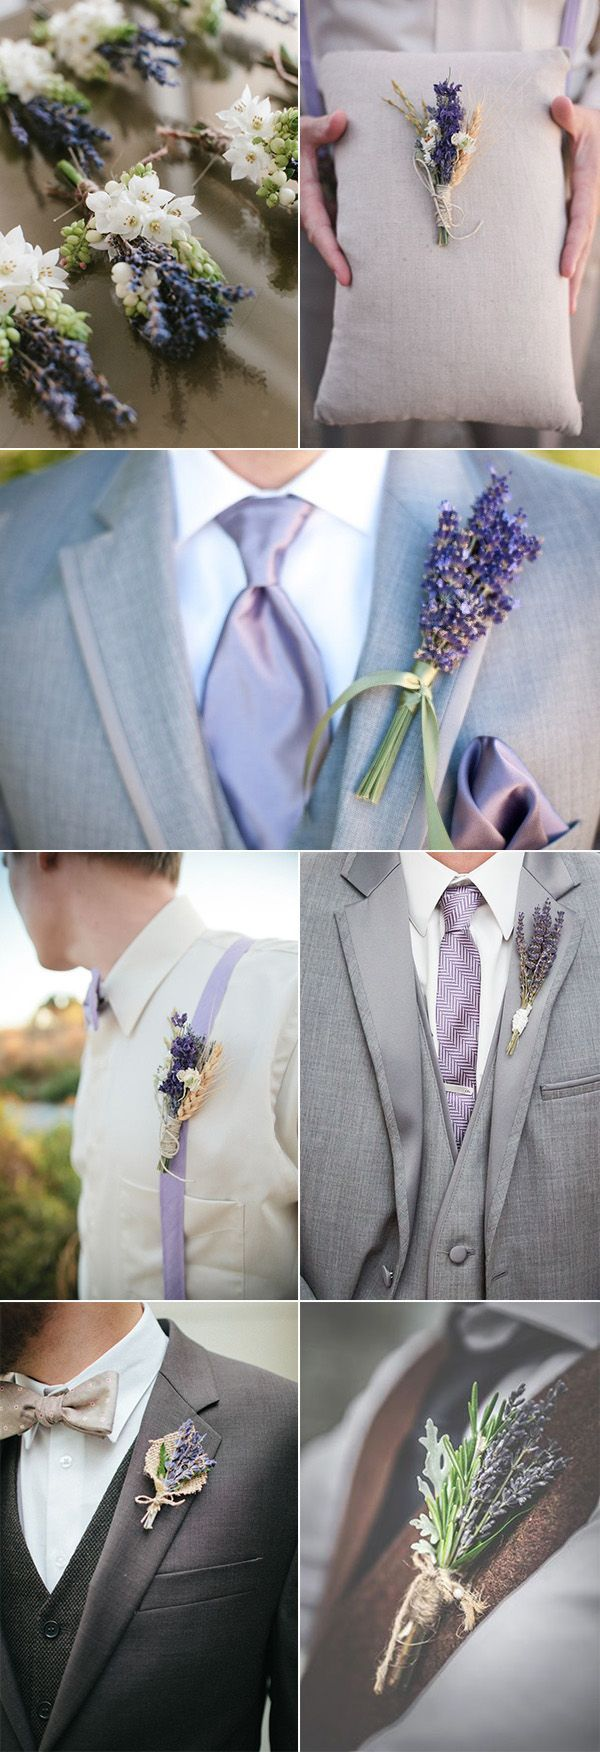 chic rusitc lavender wedding boutonnieres for guys- Repinned by Flowers of Kingwood -Kingwood Florist